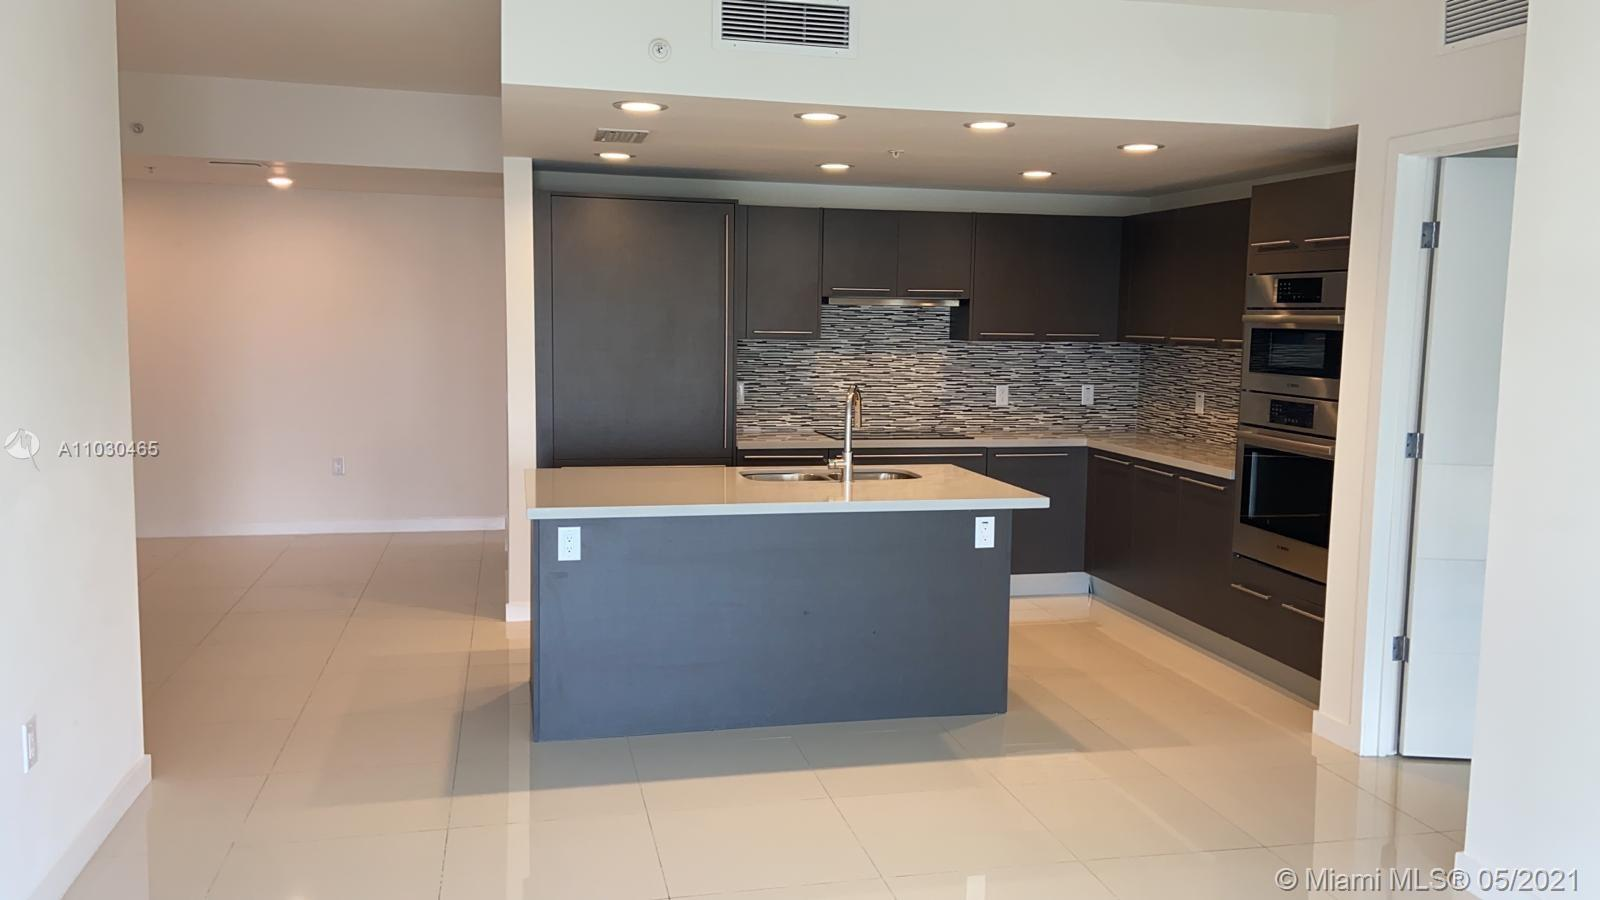 Midtown Doral - Building 1 #508 - 7661 NW 107th Ave #508, Doral, FL 33178